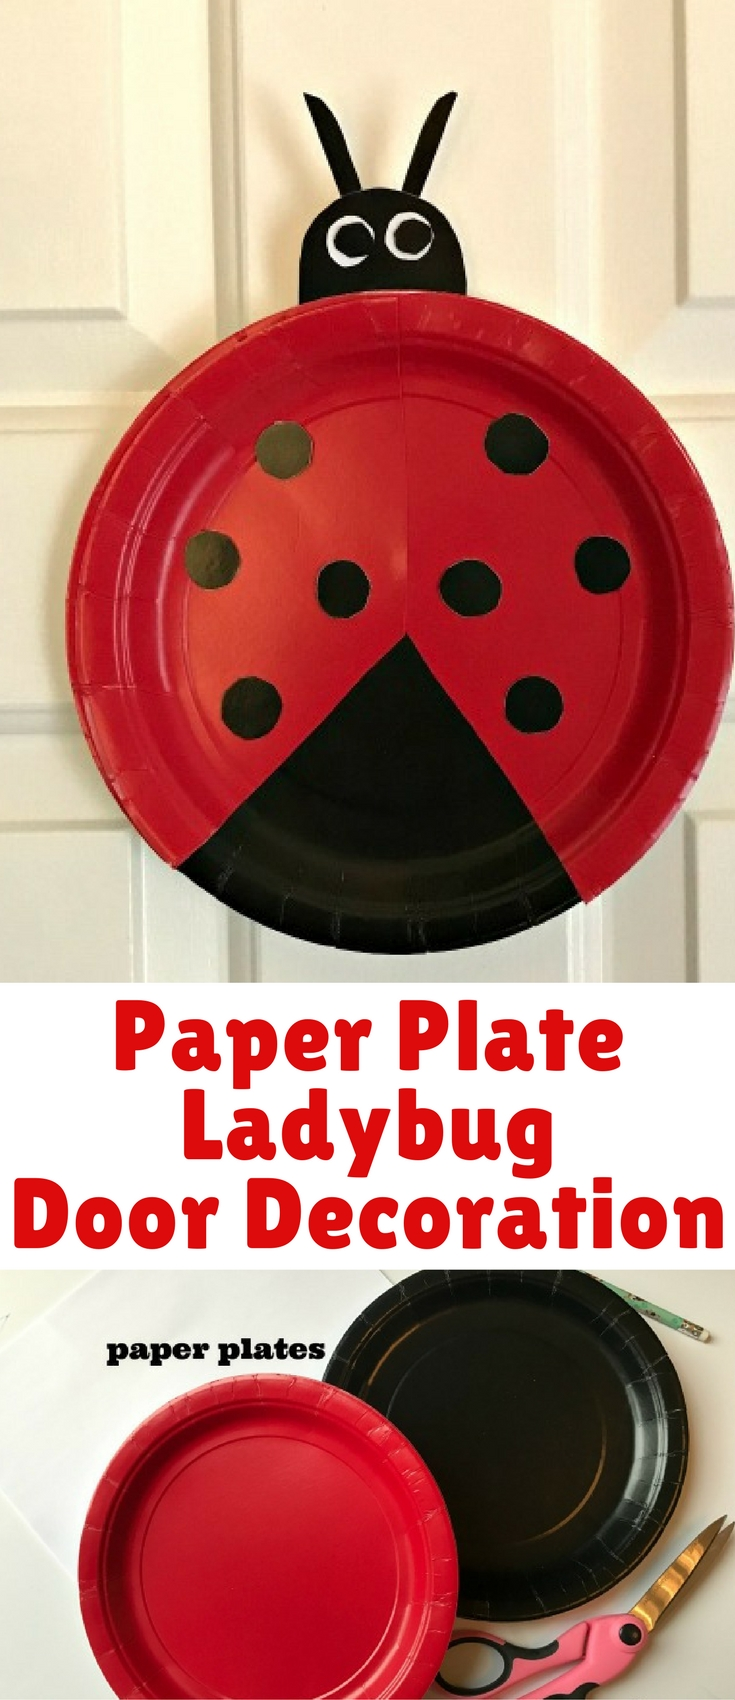 This simple paper plate ladybug craft if perfect for even the tiniest crafters!